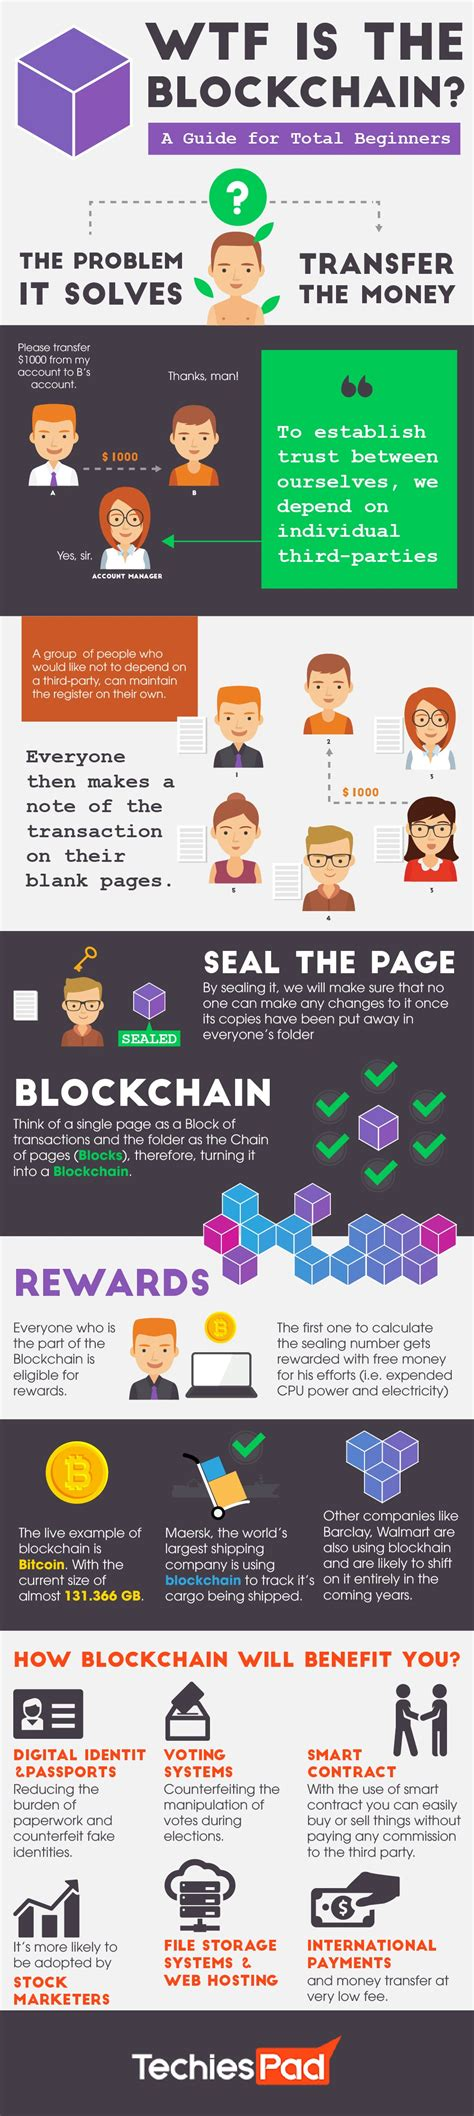 cryptocurrencies an essential beginner s guide to blockchain technology cryptocurrency investing mastering bitcoin basics including mining trading and some info on programming books an ultimate beginner s guide to blockchain infographic